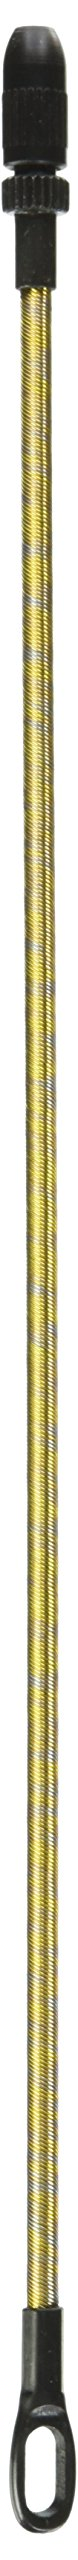 13-Inch Flexible Fish Tape Leader for 1/8-Inch Wide Steel Fish Tapes Klein Tools 50350